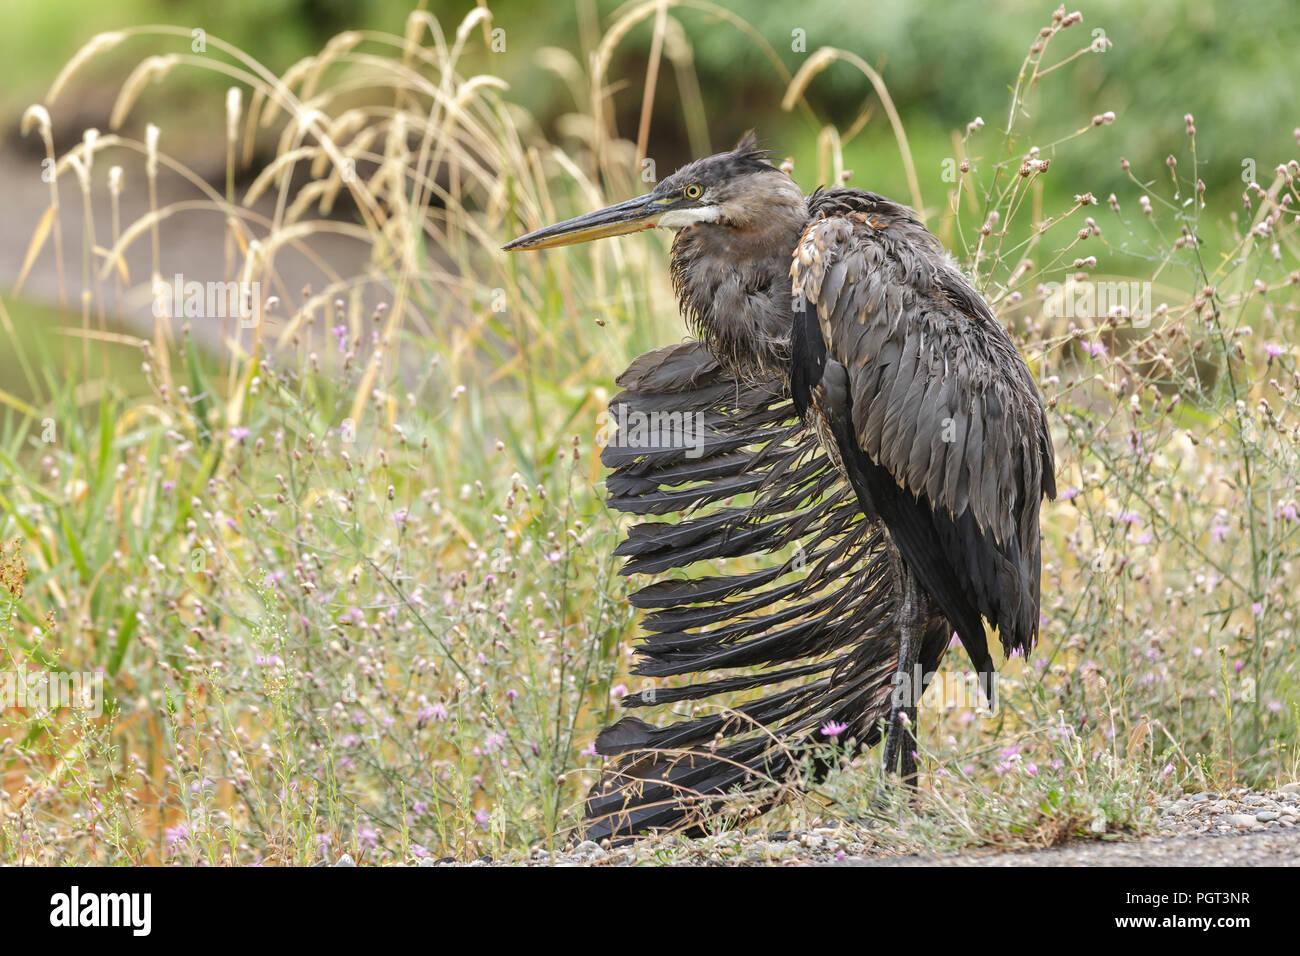 A great blue heron is in distress with a broken wing in Hauser, Idaho. - Stock Image